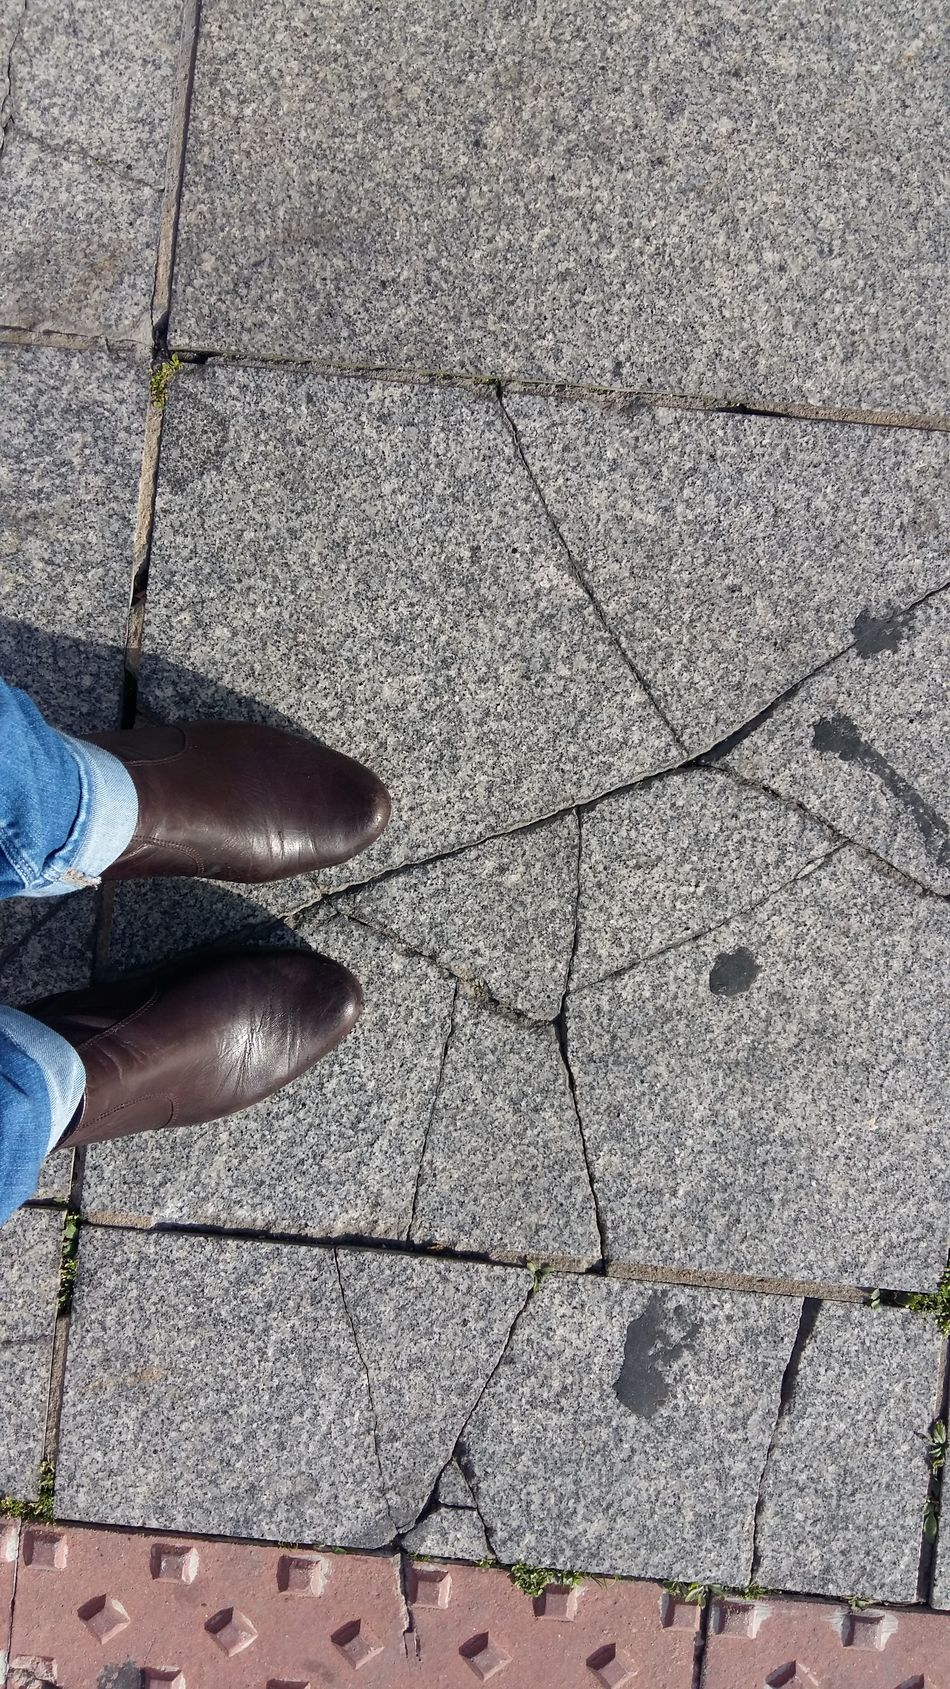 Blogger Womanfashion Boots And Jeans Broken Tiles Tilesphotography Urban Fashion Urban Scene Urban Photography Stree Photography Streetphotography Streetfashion Walking On The Street Walking Around The City